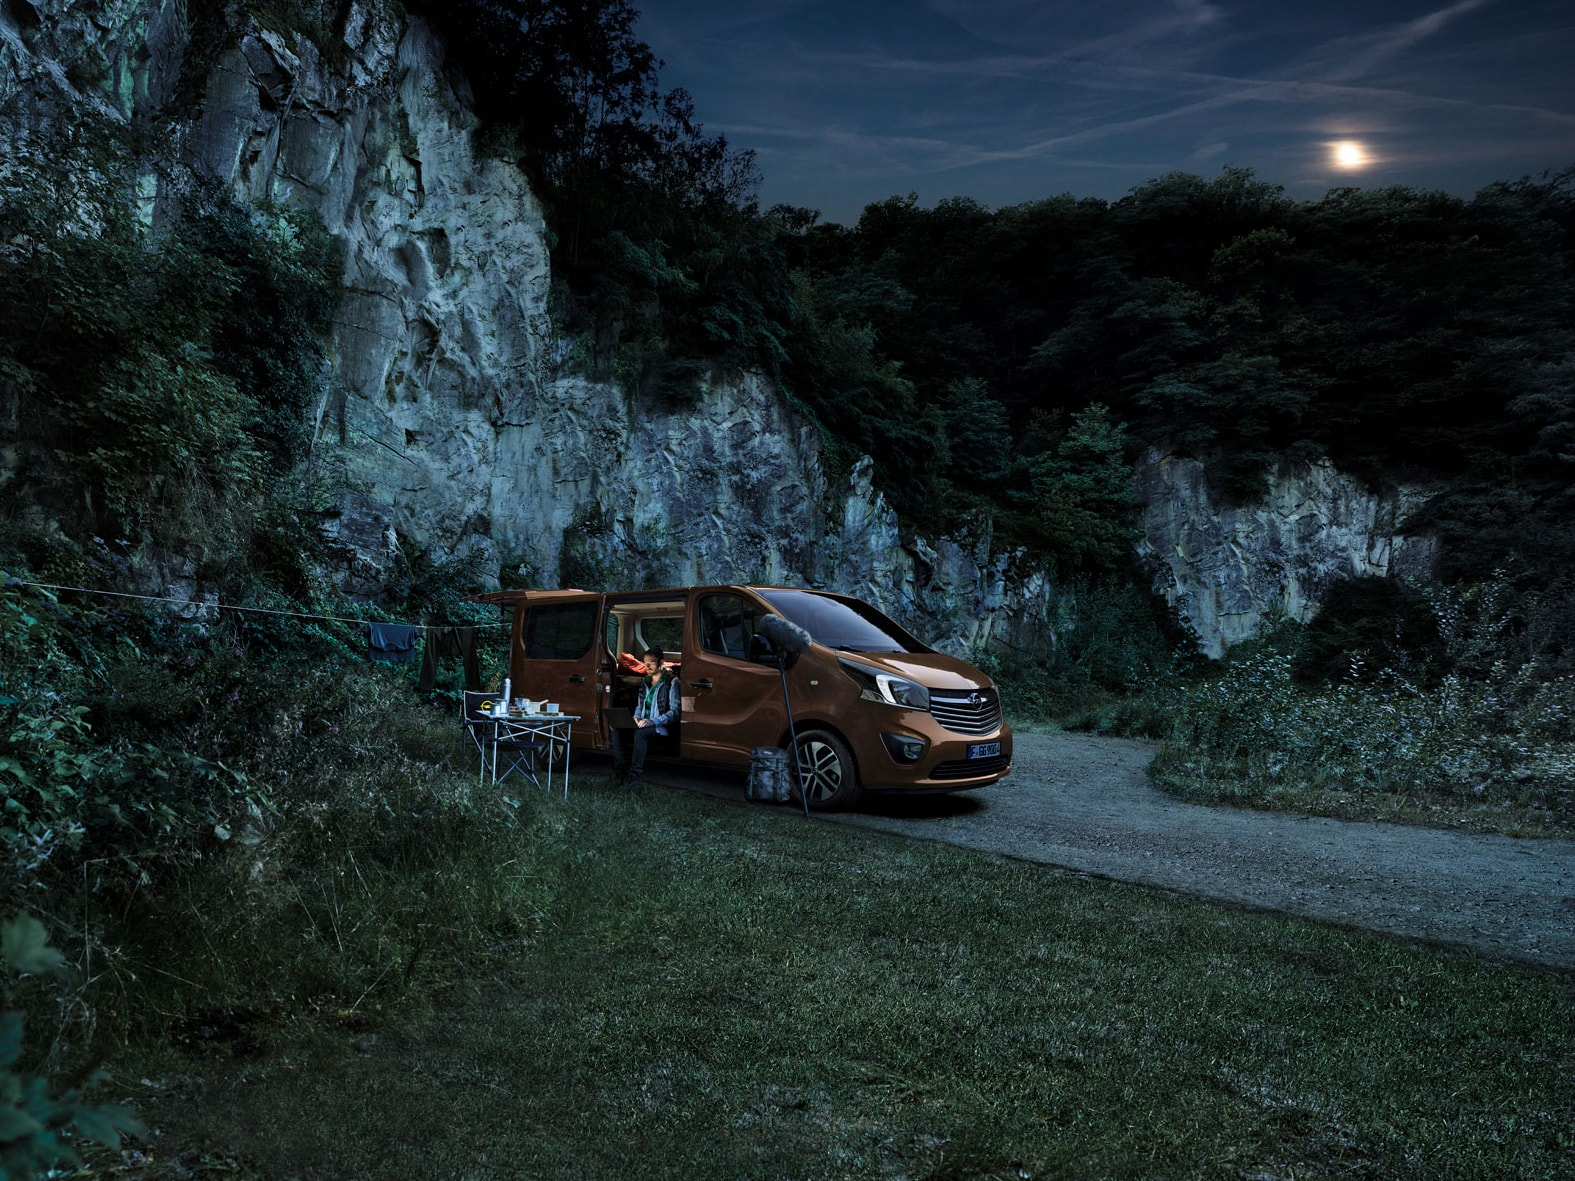 johannes kuehn photography and cgi berlin Germany with Opel